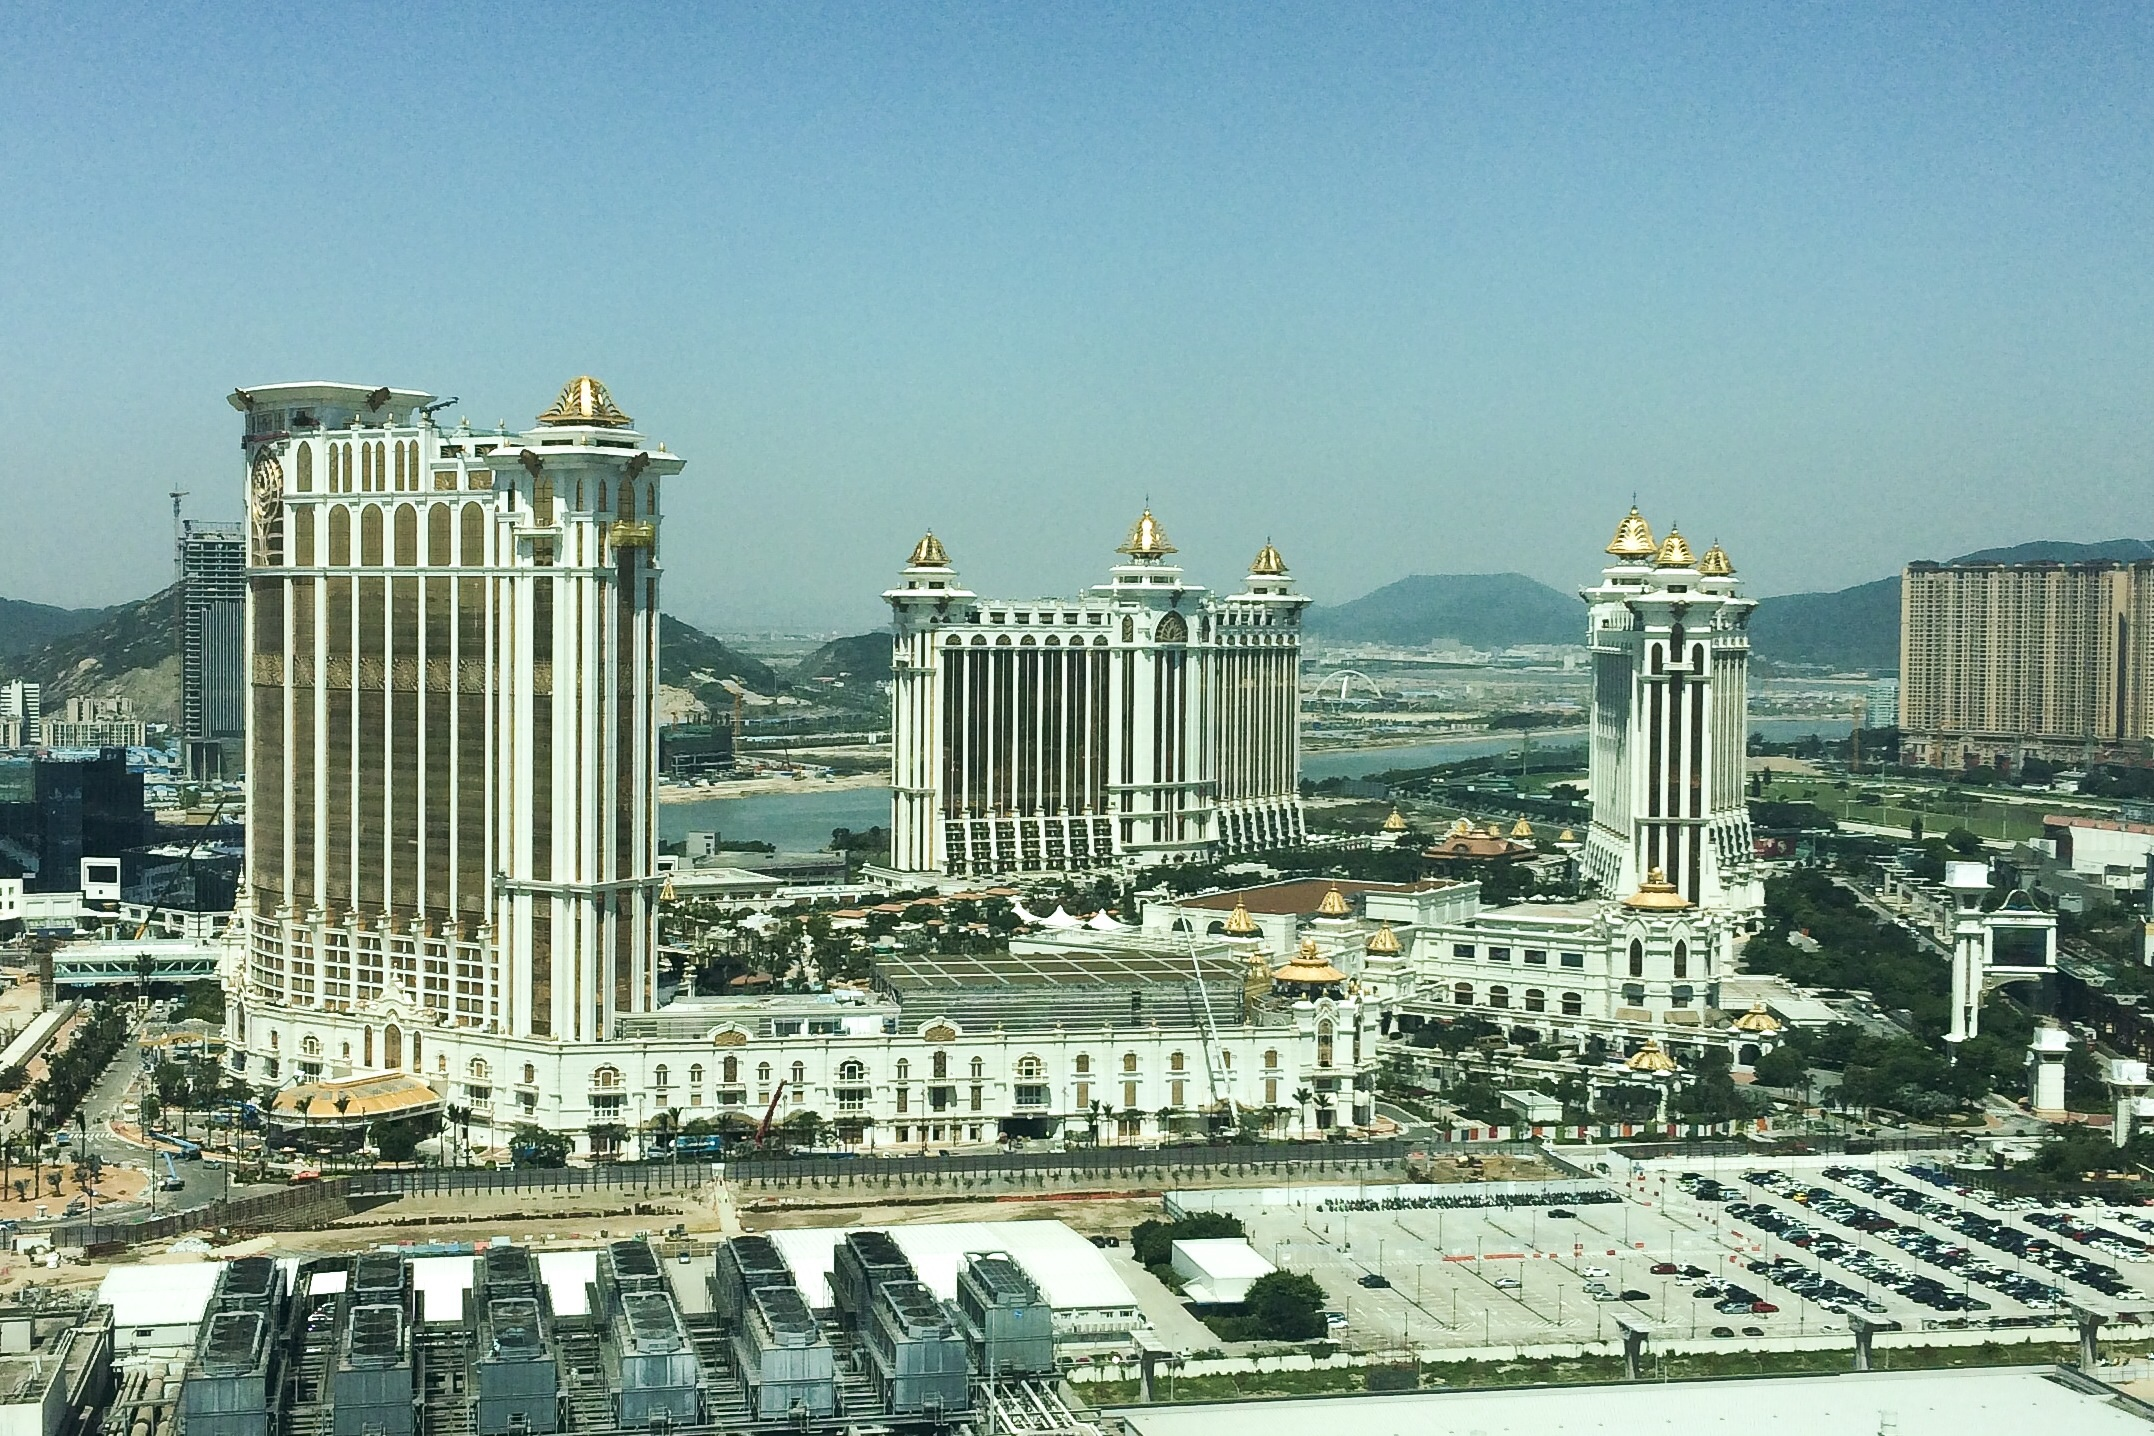 Galaxy_macau_phase_1_and_2.jpeg